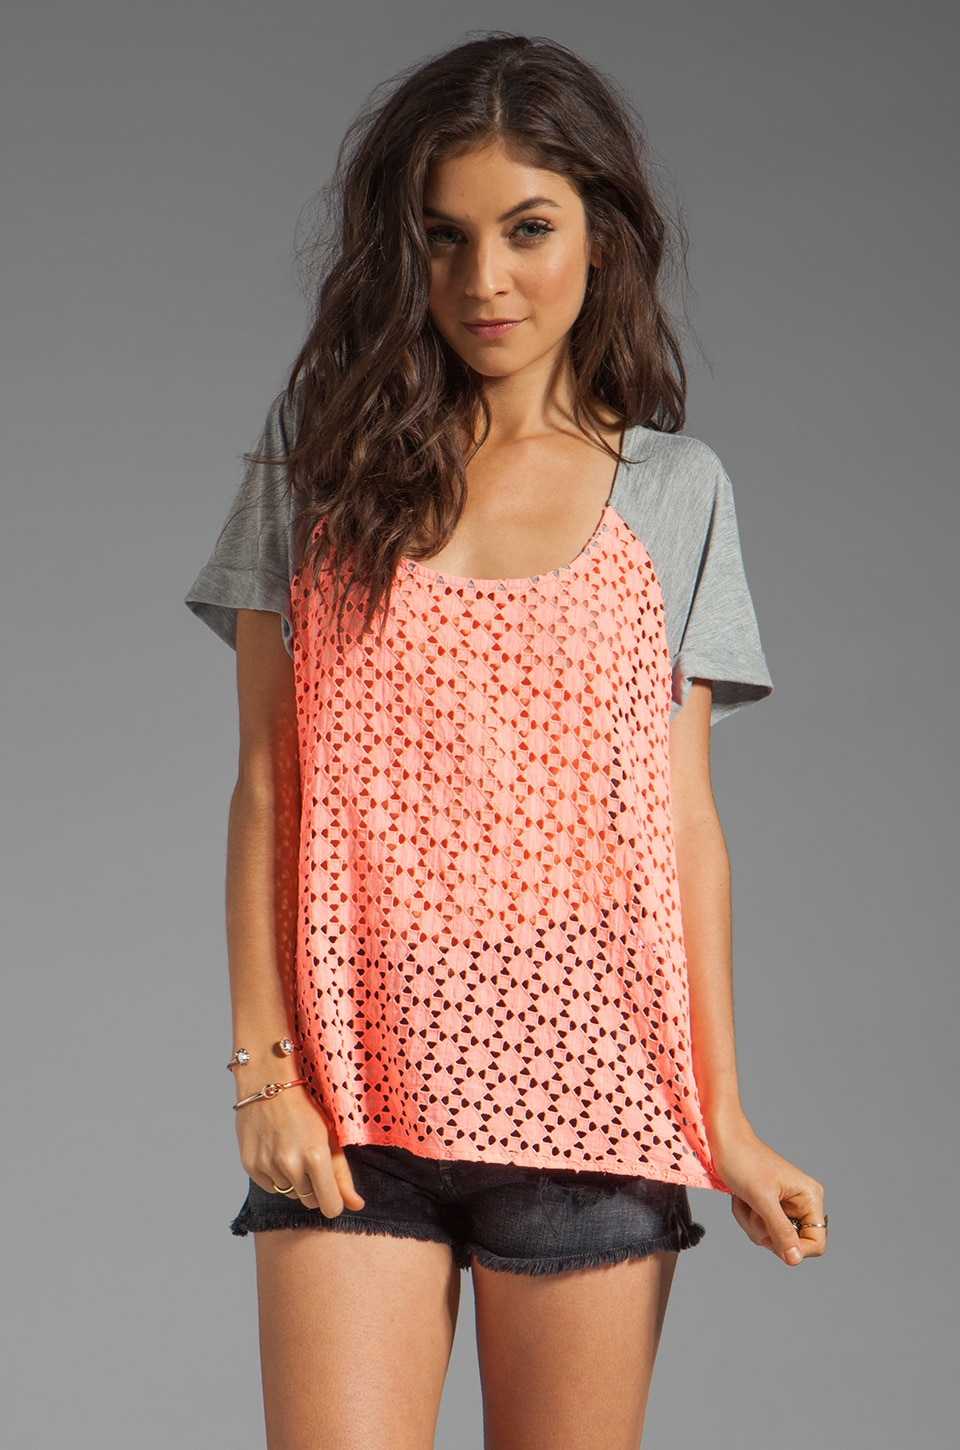 SAM&LAVI Nash Top in Light Coral